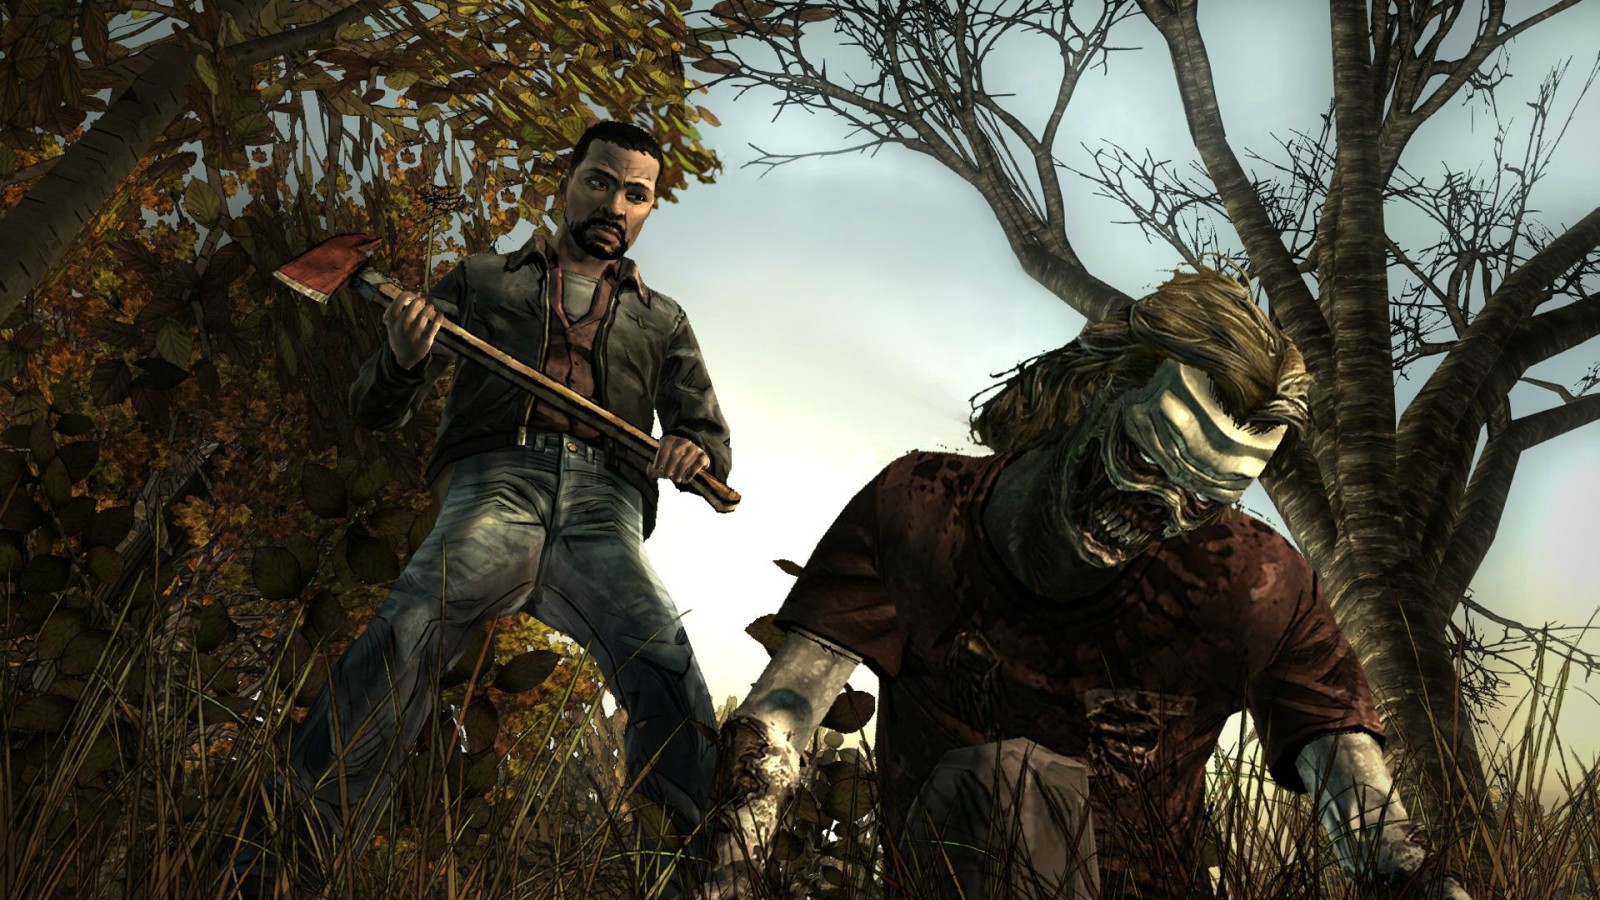 Recenzja gry The Walking Dead: Episode 2 - Starved for Help PS3